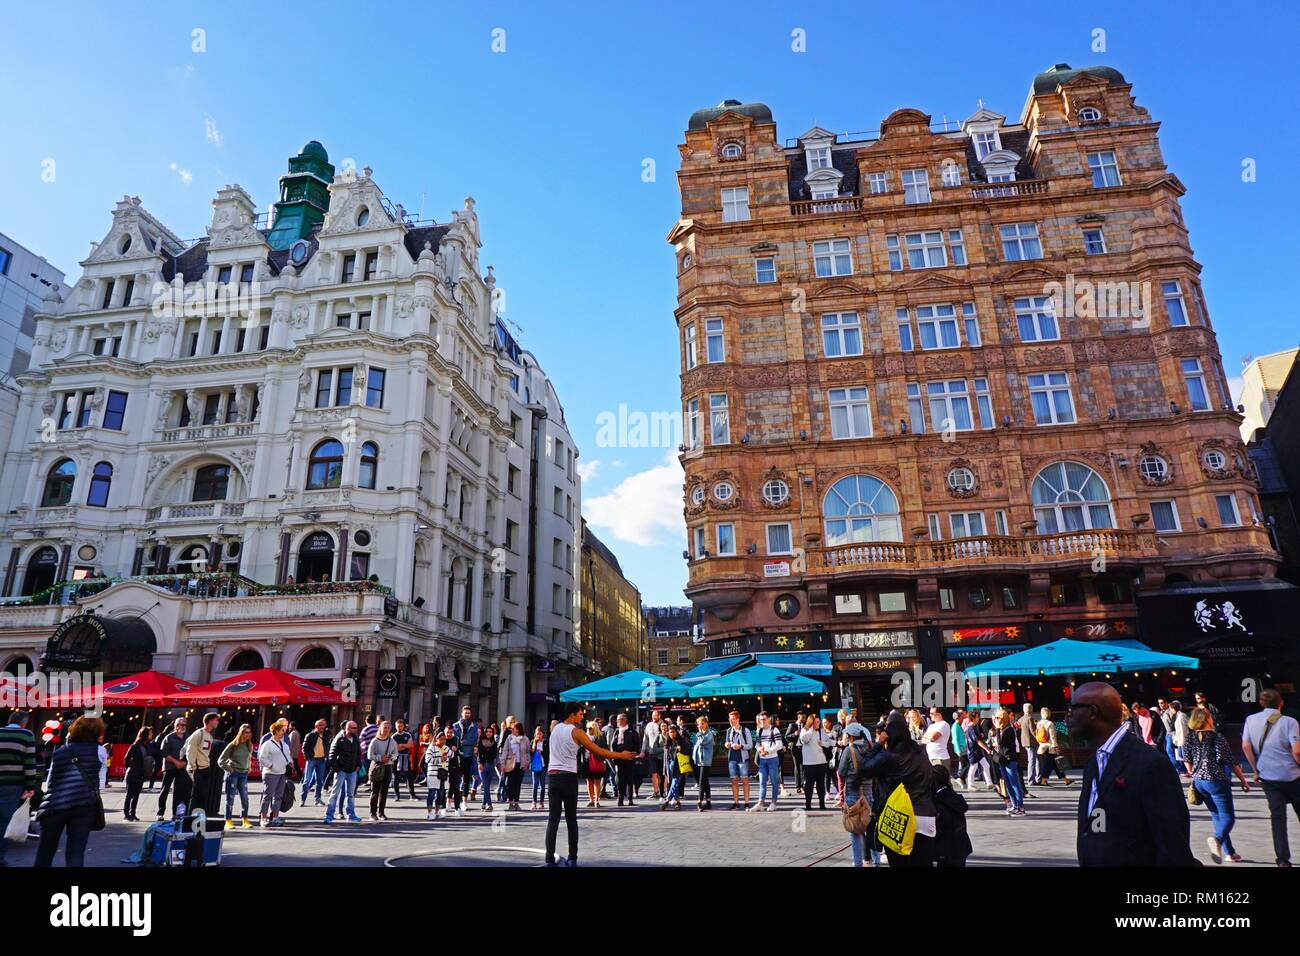 Victory House Hotel and Queens House. Leicester Square, London, England, Great Britain, Europe. - Stock Image